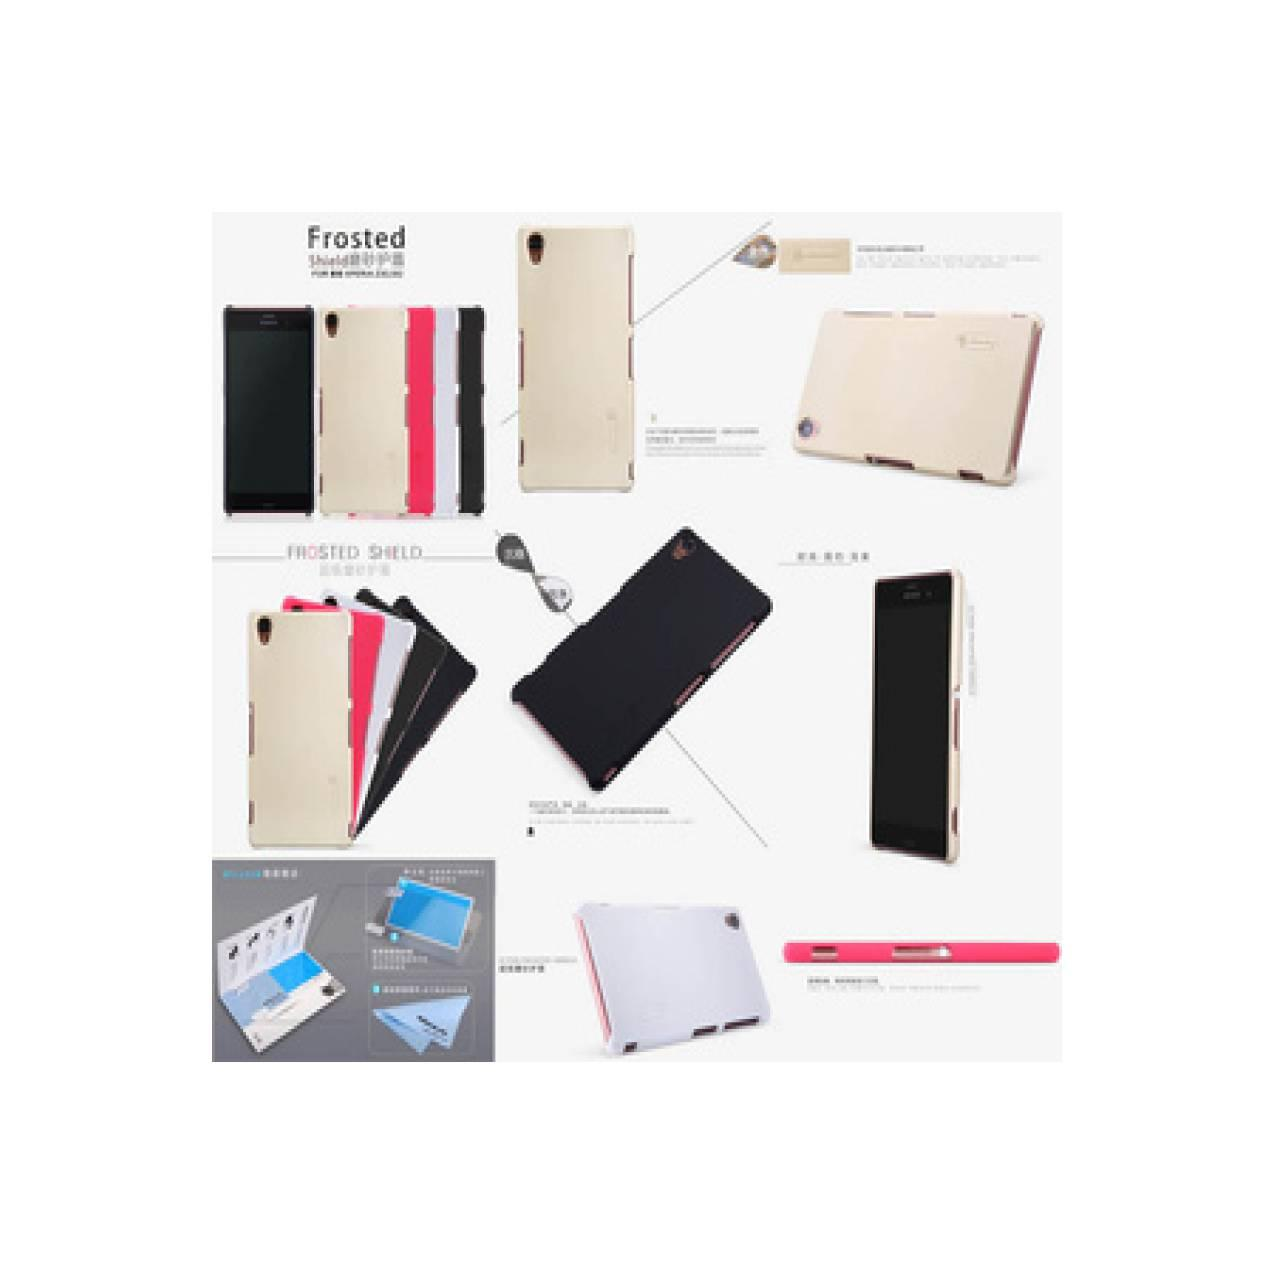 Jual Hardcase Nillkin Super Frosted Hard Cover Case Sony Xperia Z3